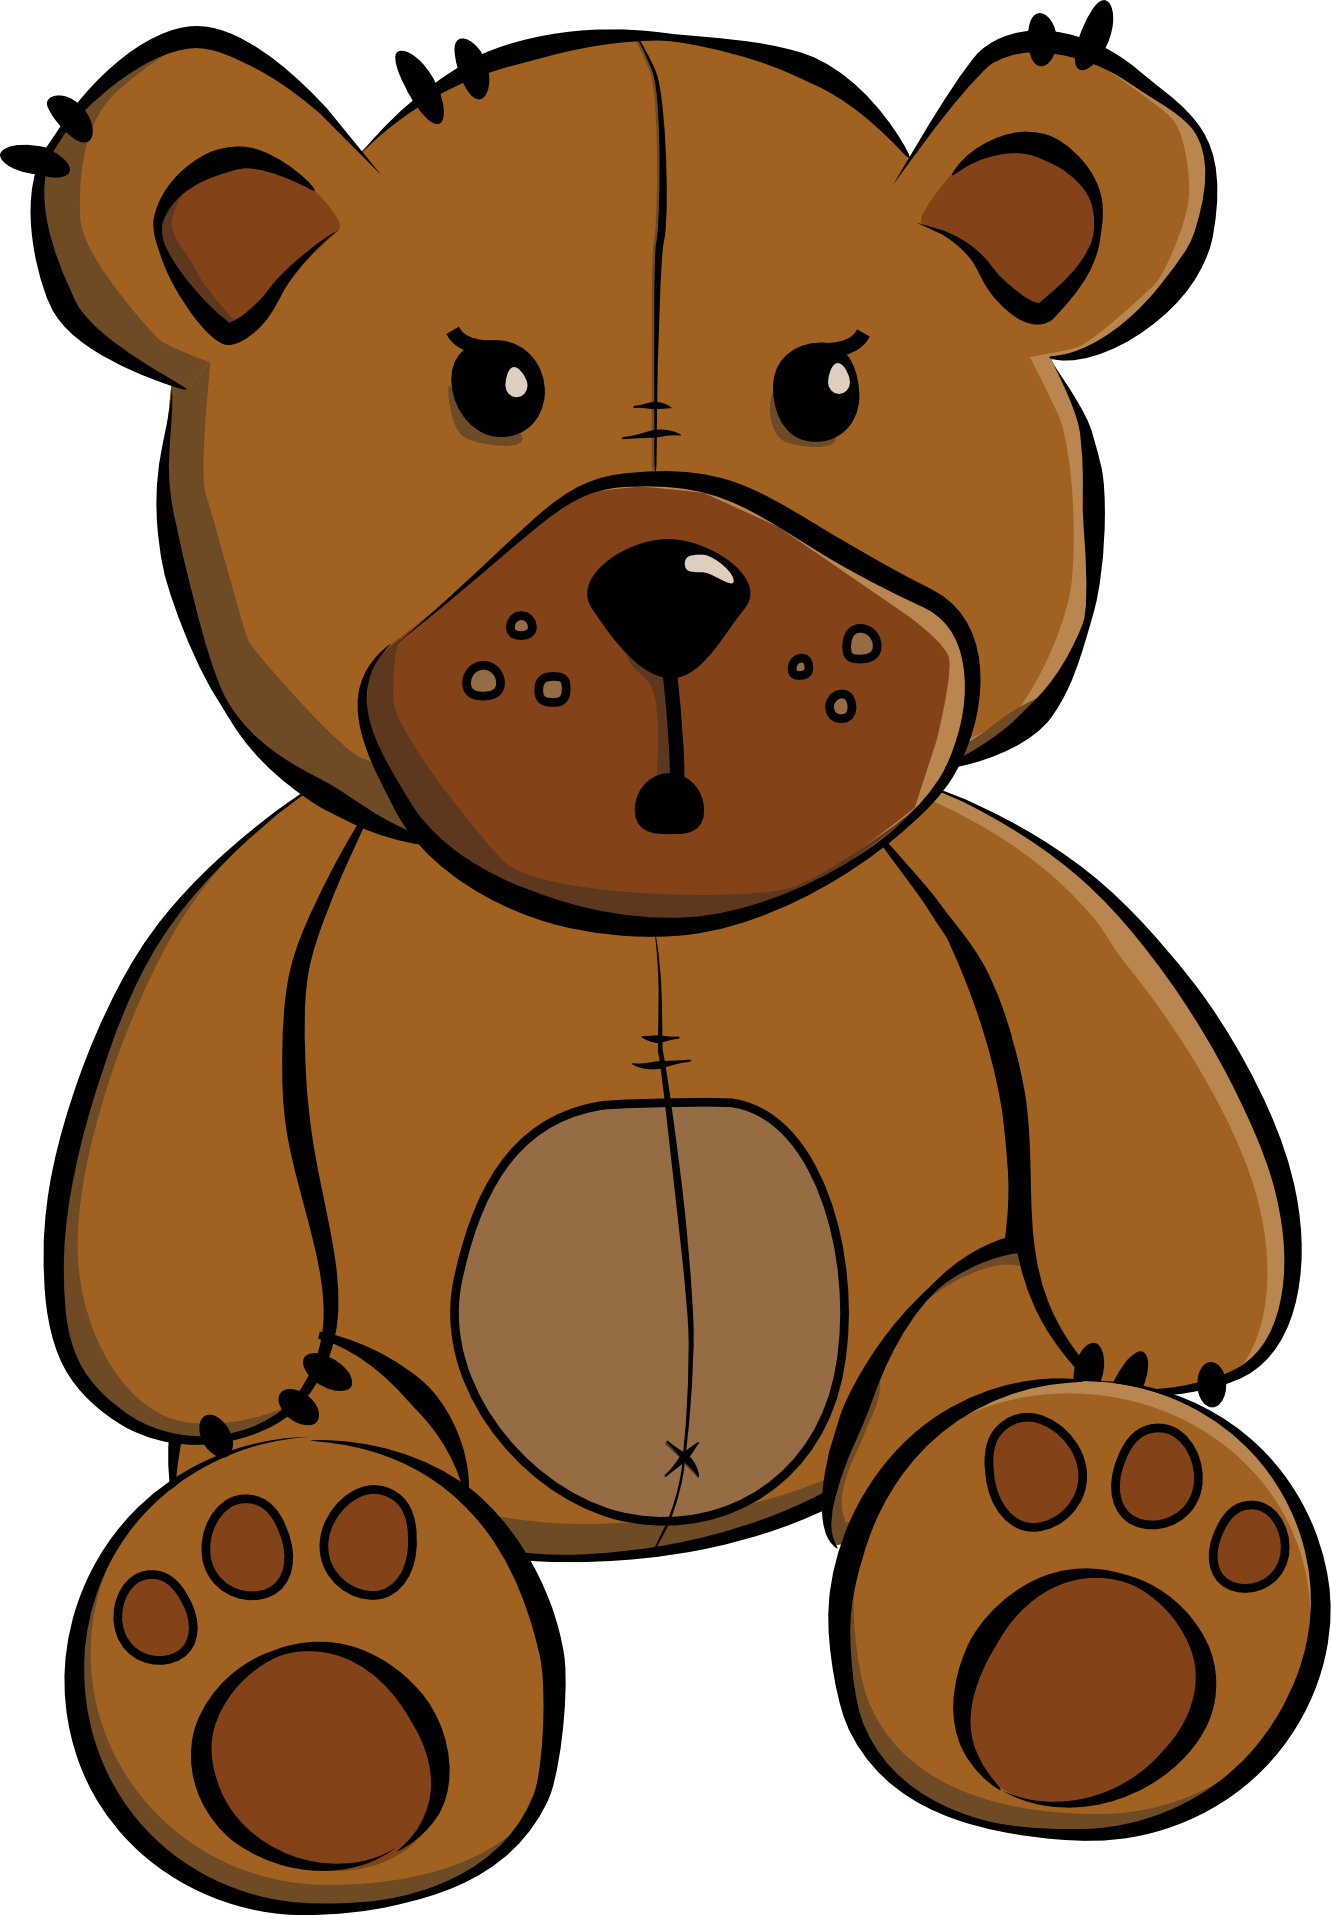 Clip art cartoon teddy bear .